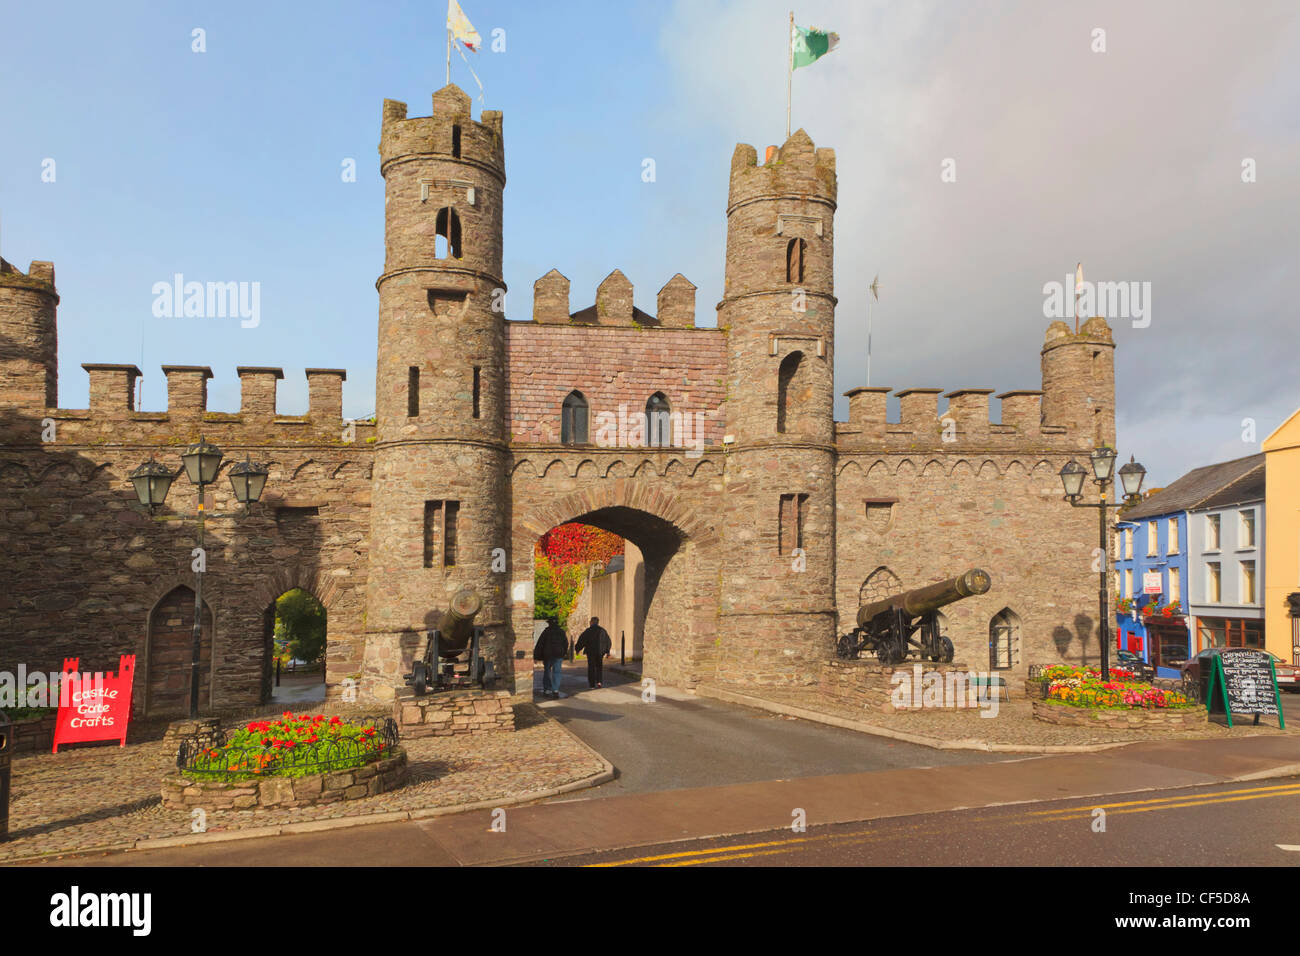 Macroom, County Cork, Republic of Ireland. Macroom Castle. - Stock Image